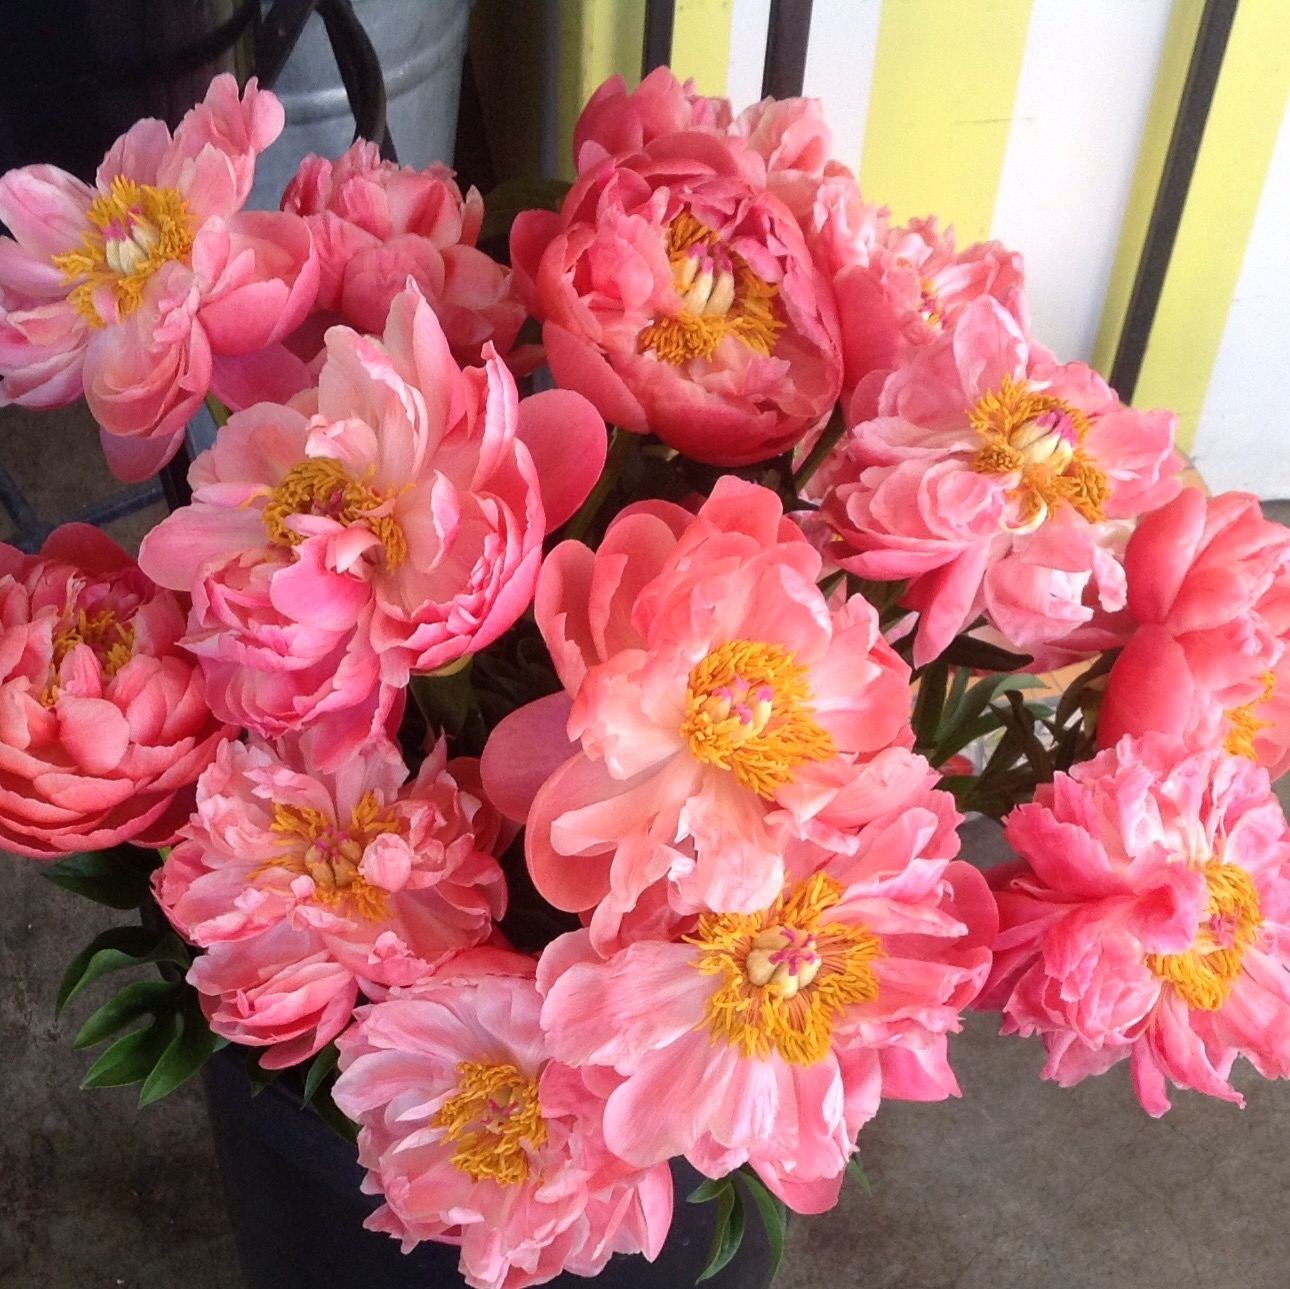 Peonies Season celebrate the season for peonies! | tranquility lane flower & garden